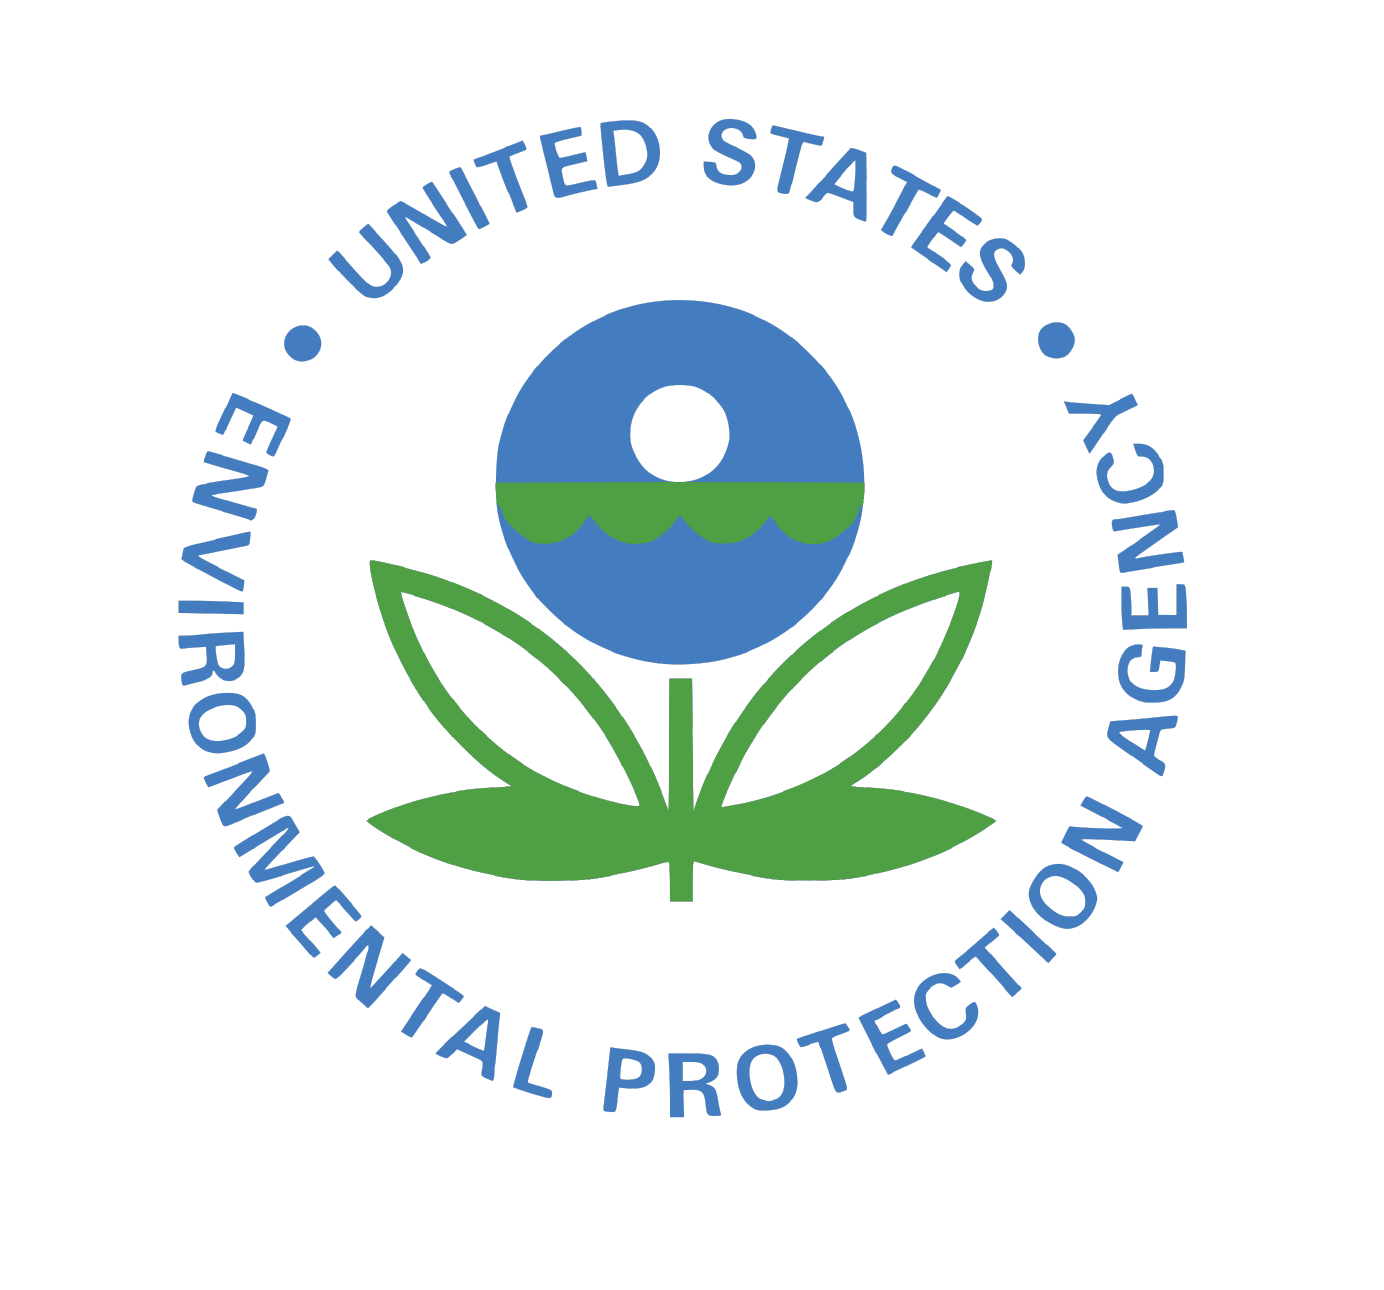 Scott Electric Recycling Division is EPA compliant